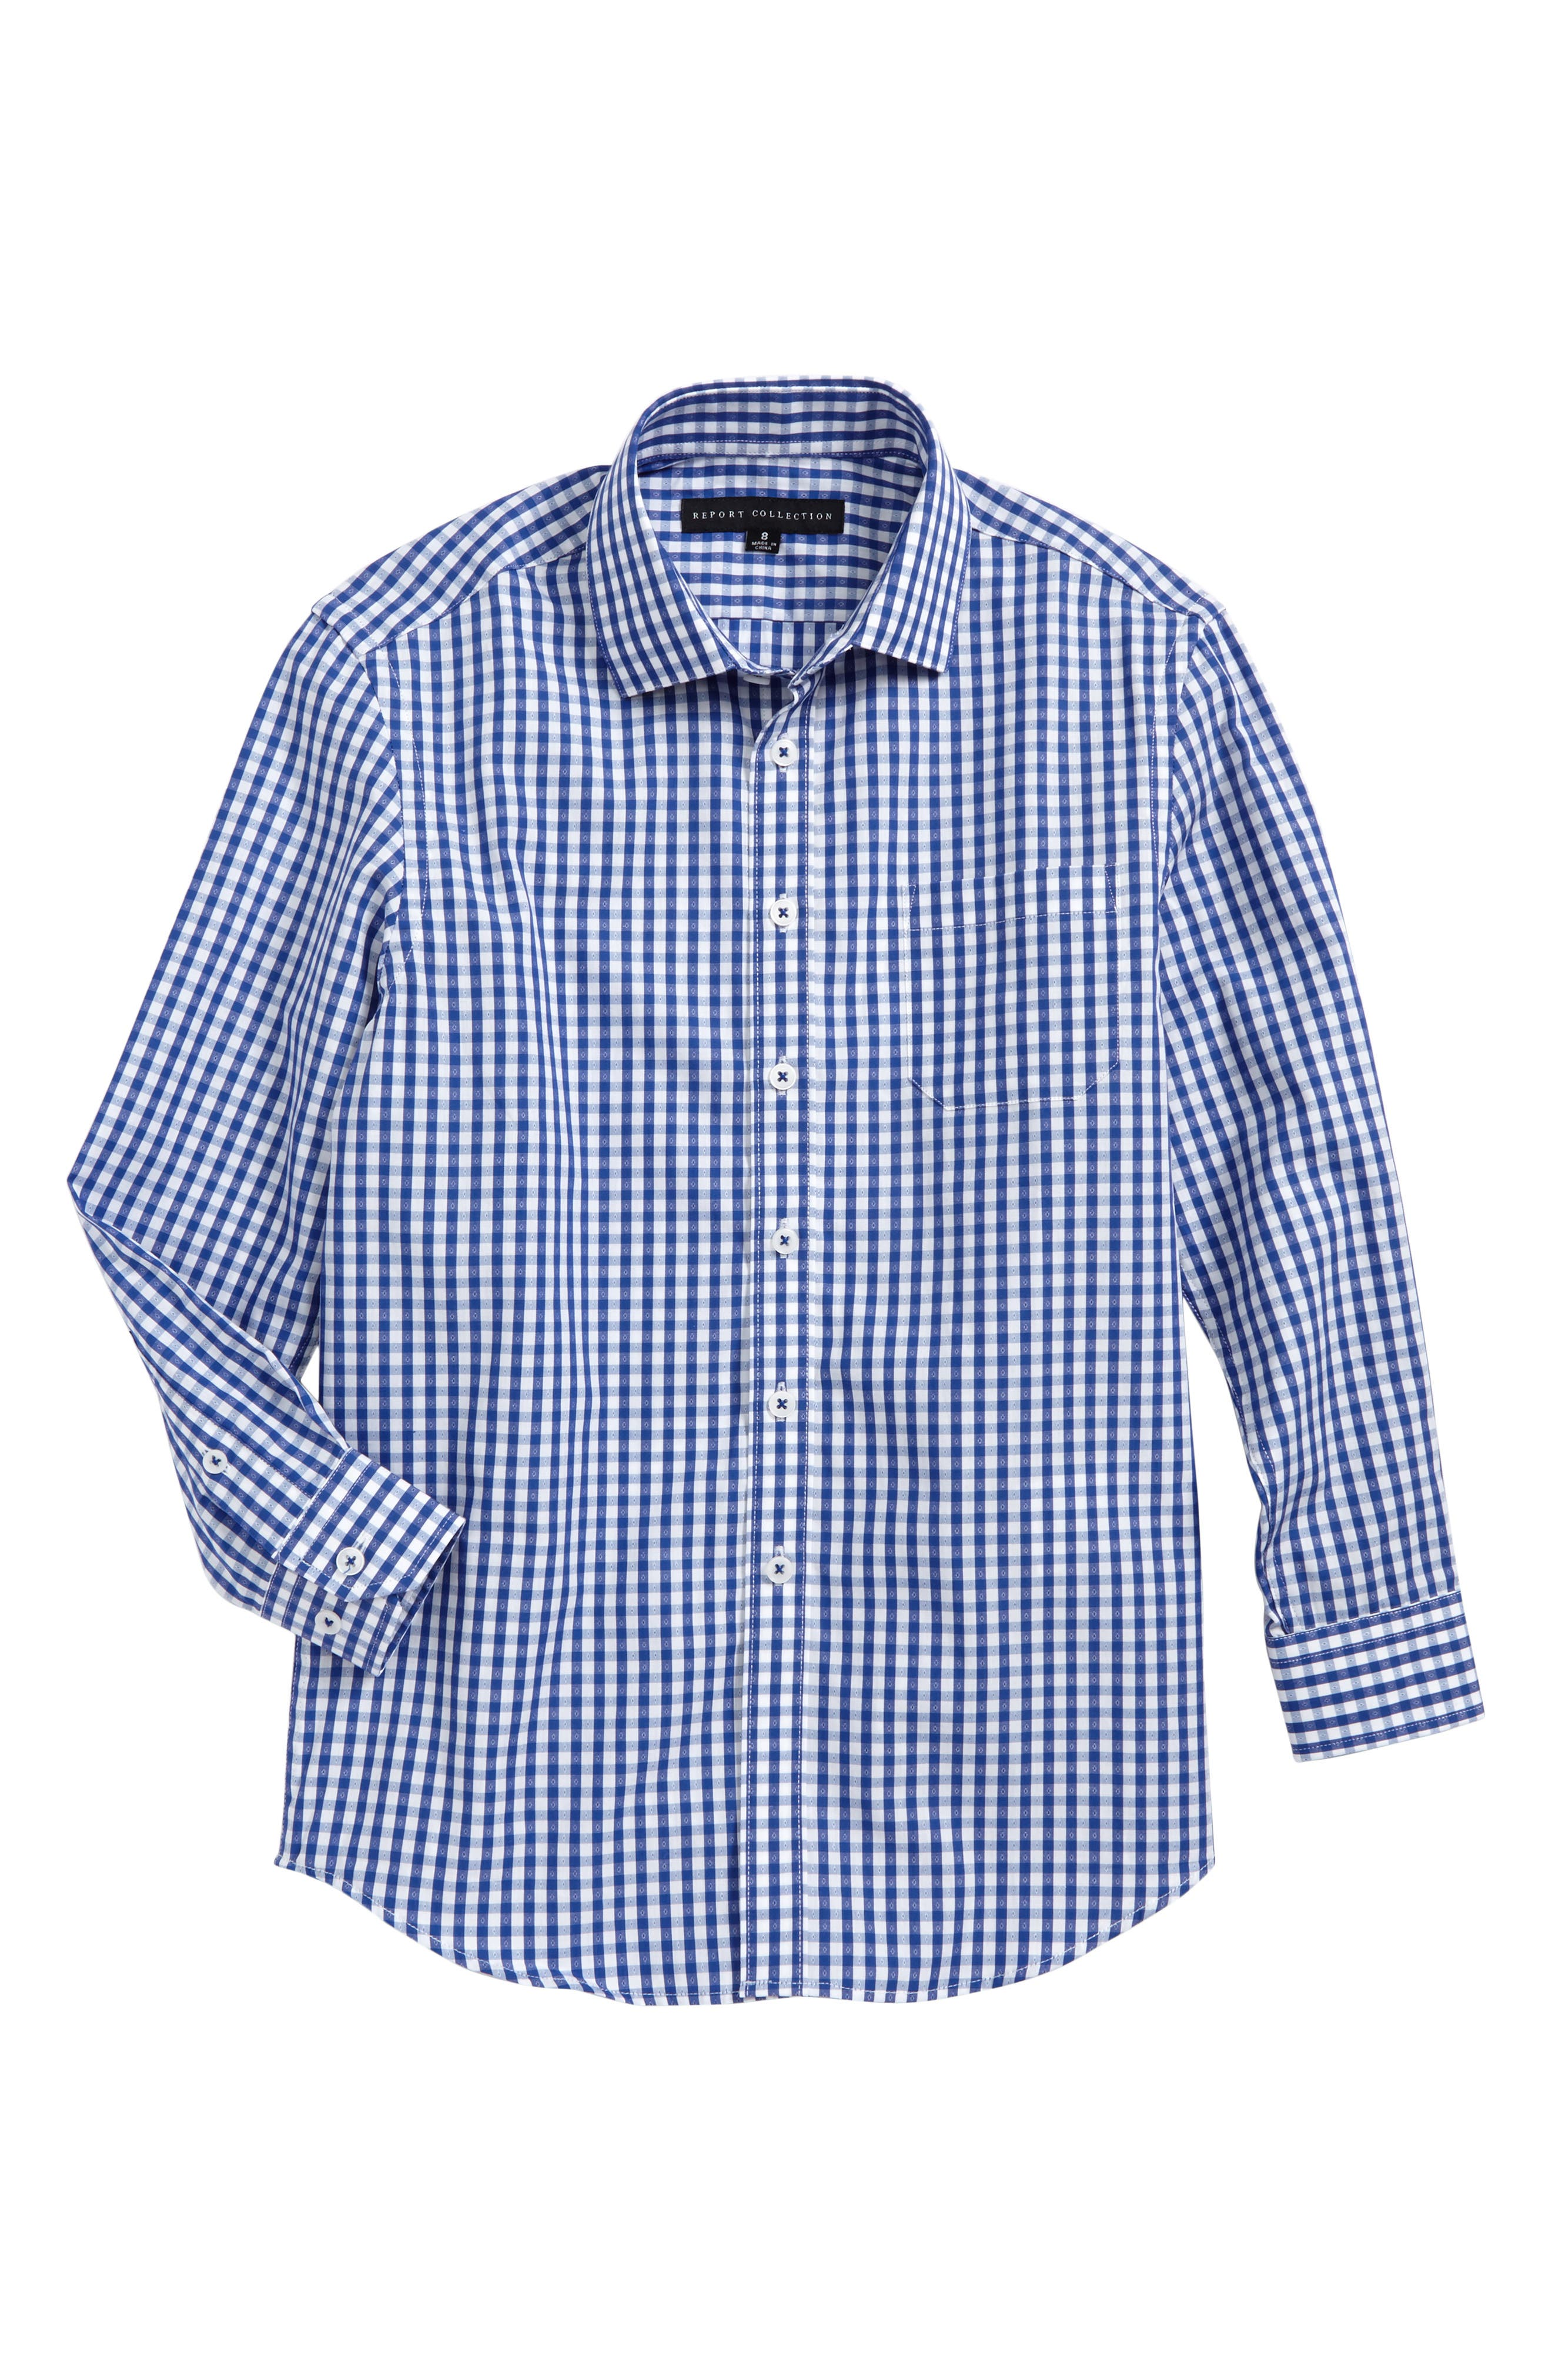 Main Image - Report Collection Check Print Dress Shirt (Big Boys)